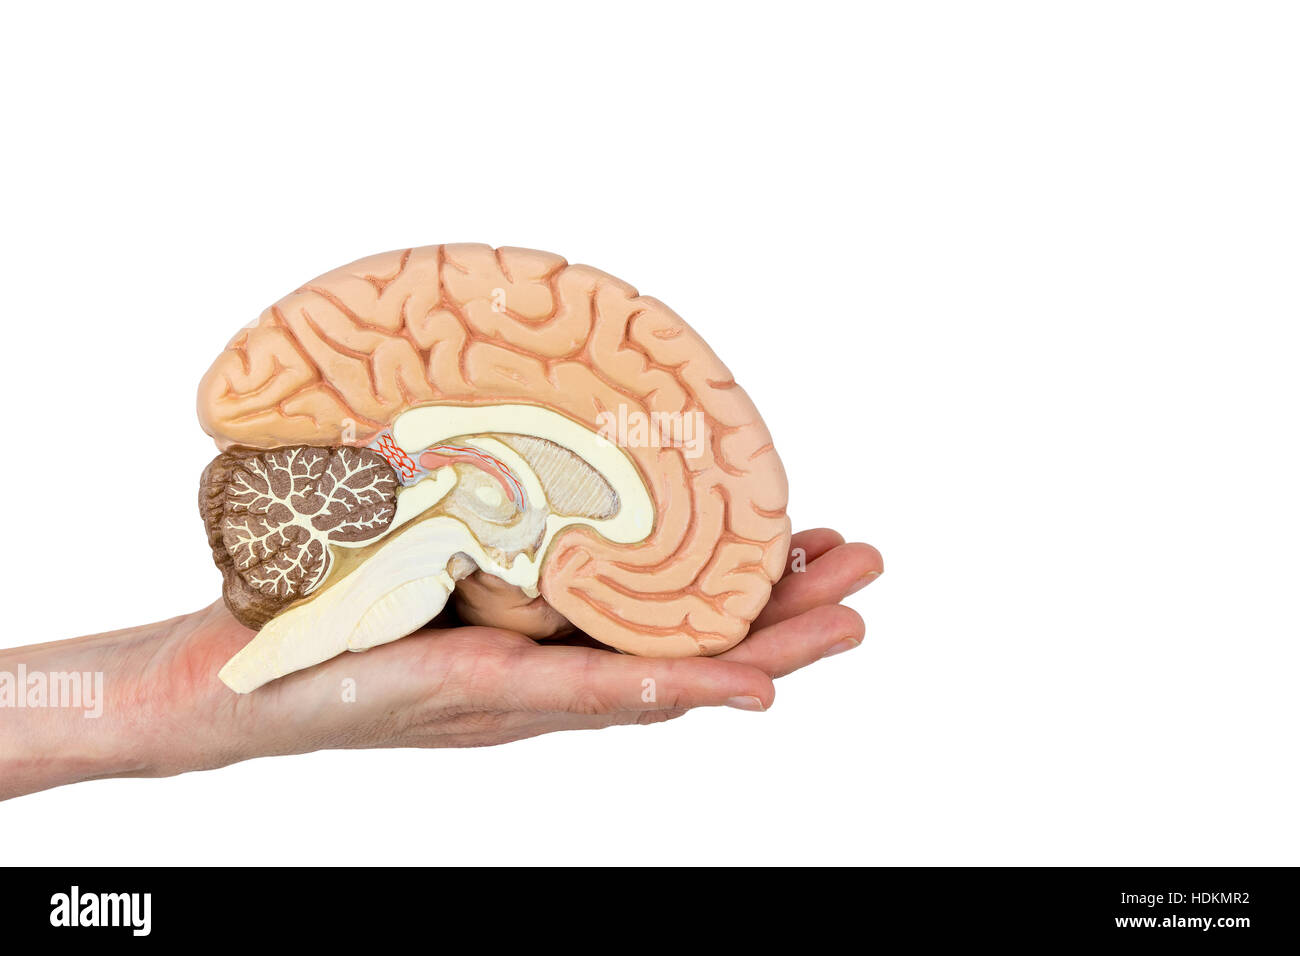 Left Brain Hemisphere Stock Photos & Left Brain Hemisphere Stock ...